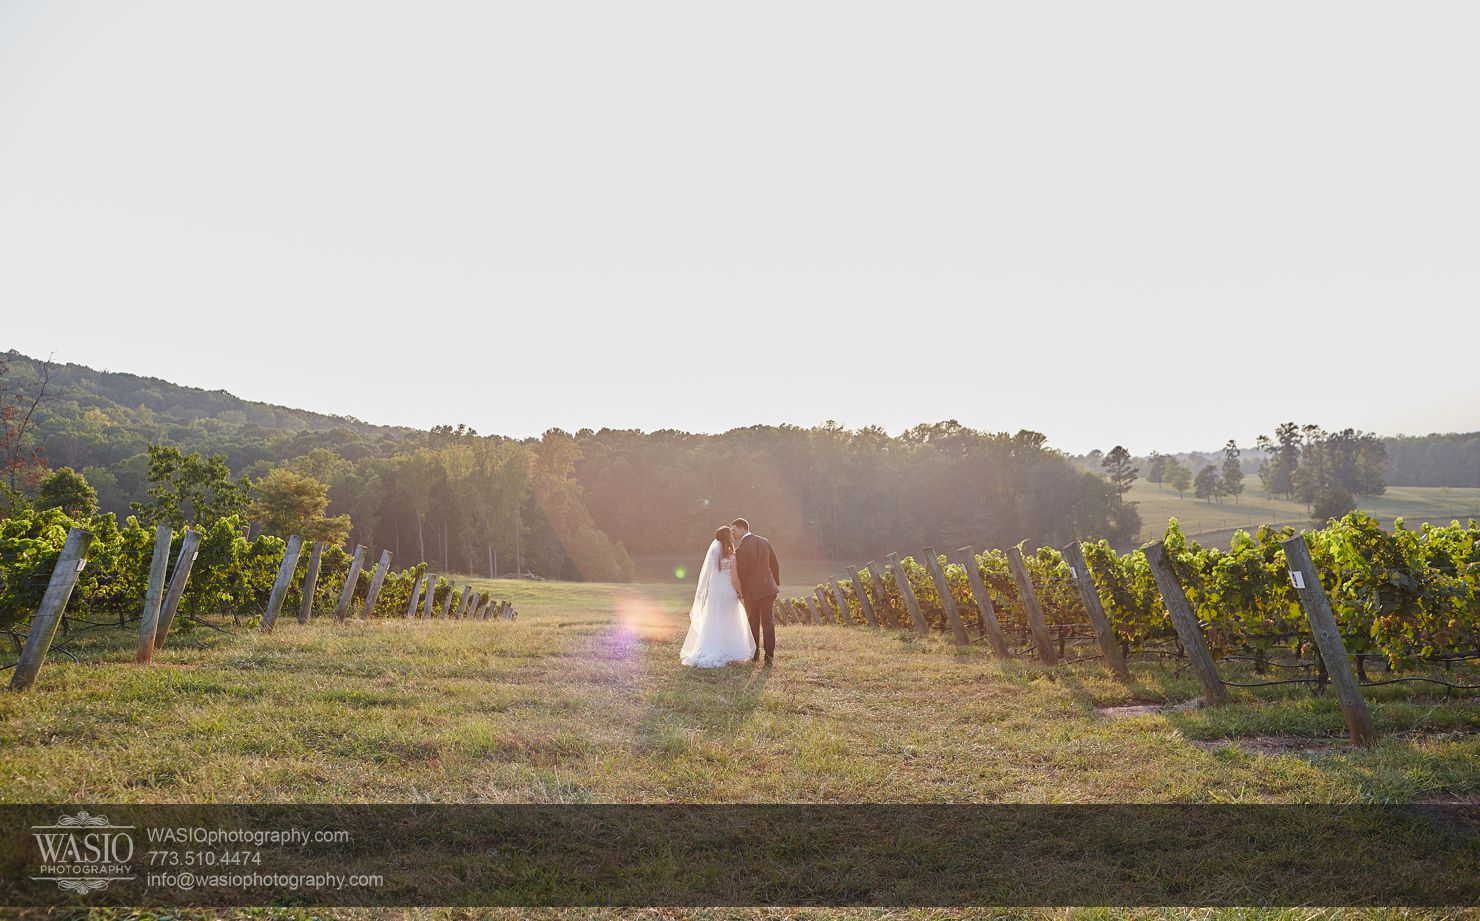 28_Raffaldini-Vineyards-Wedding_Christine-Lawson_0O3A9224 Raffaldini Vineyards Wedding - Christine & Lawson